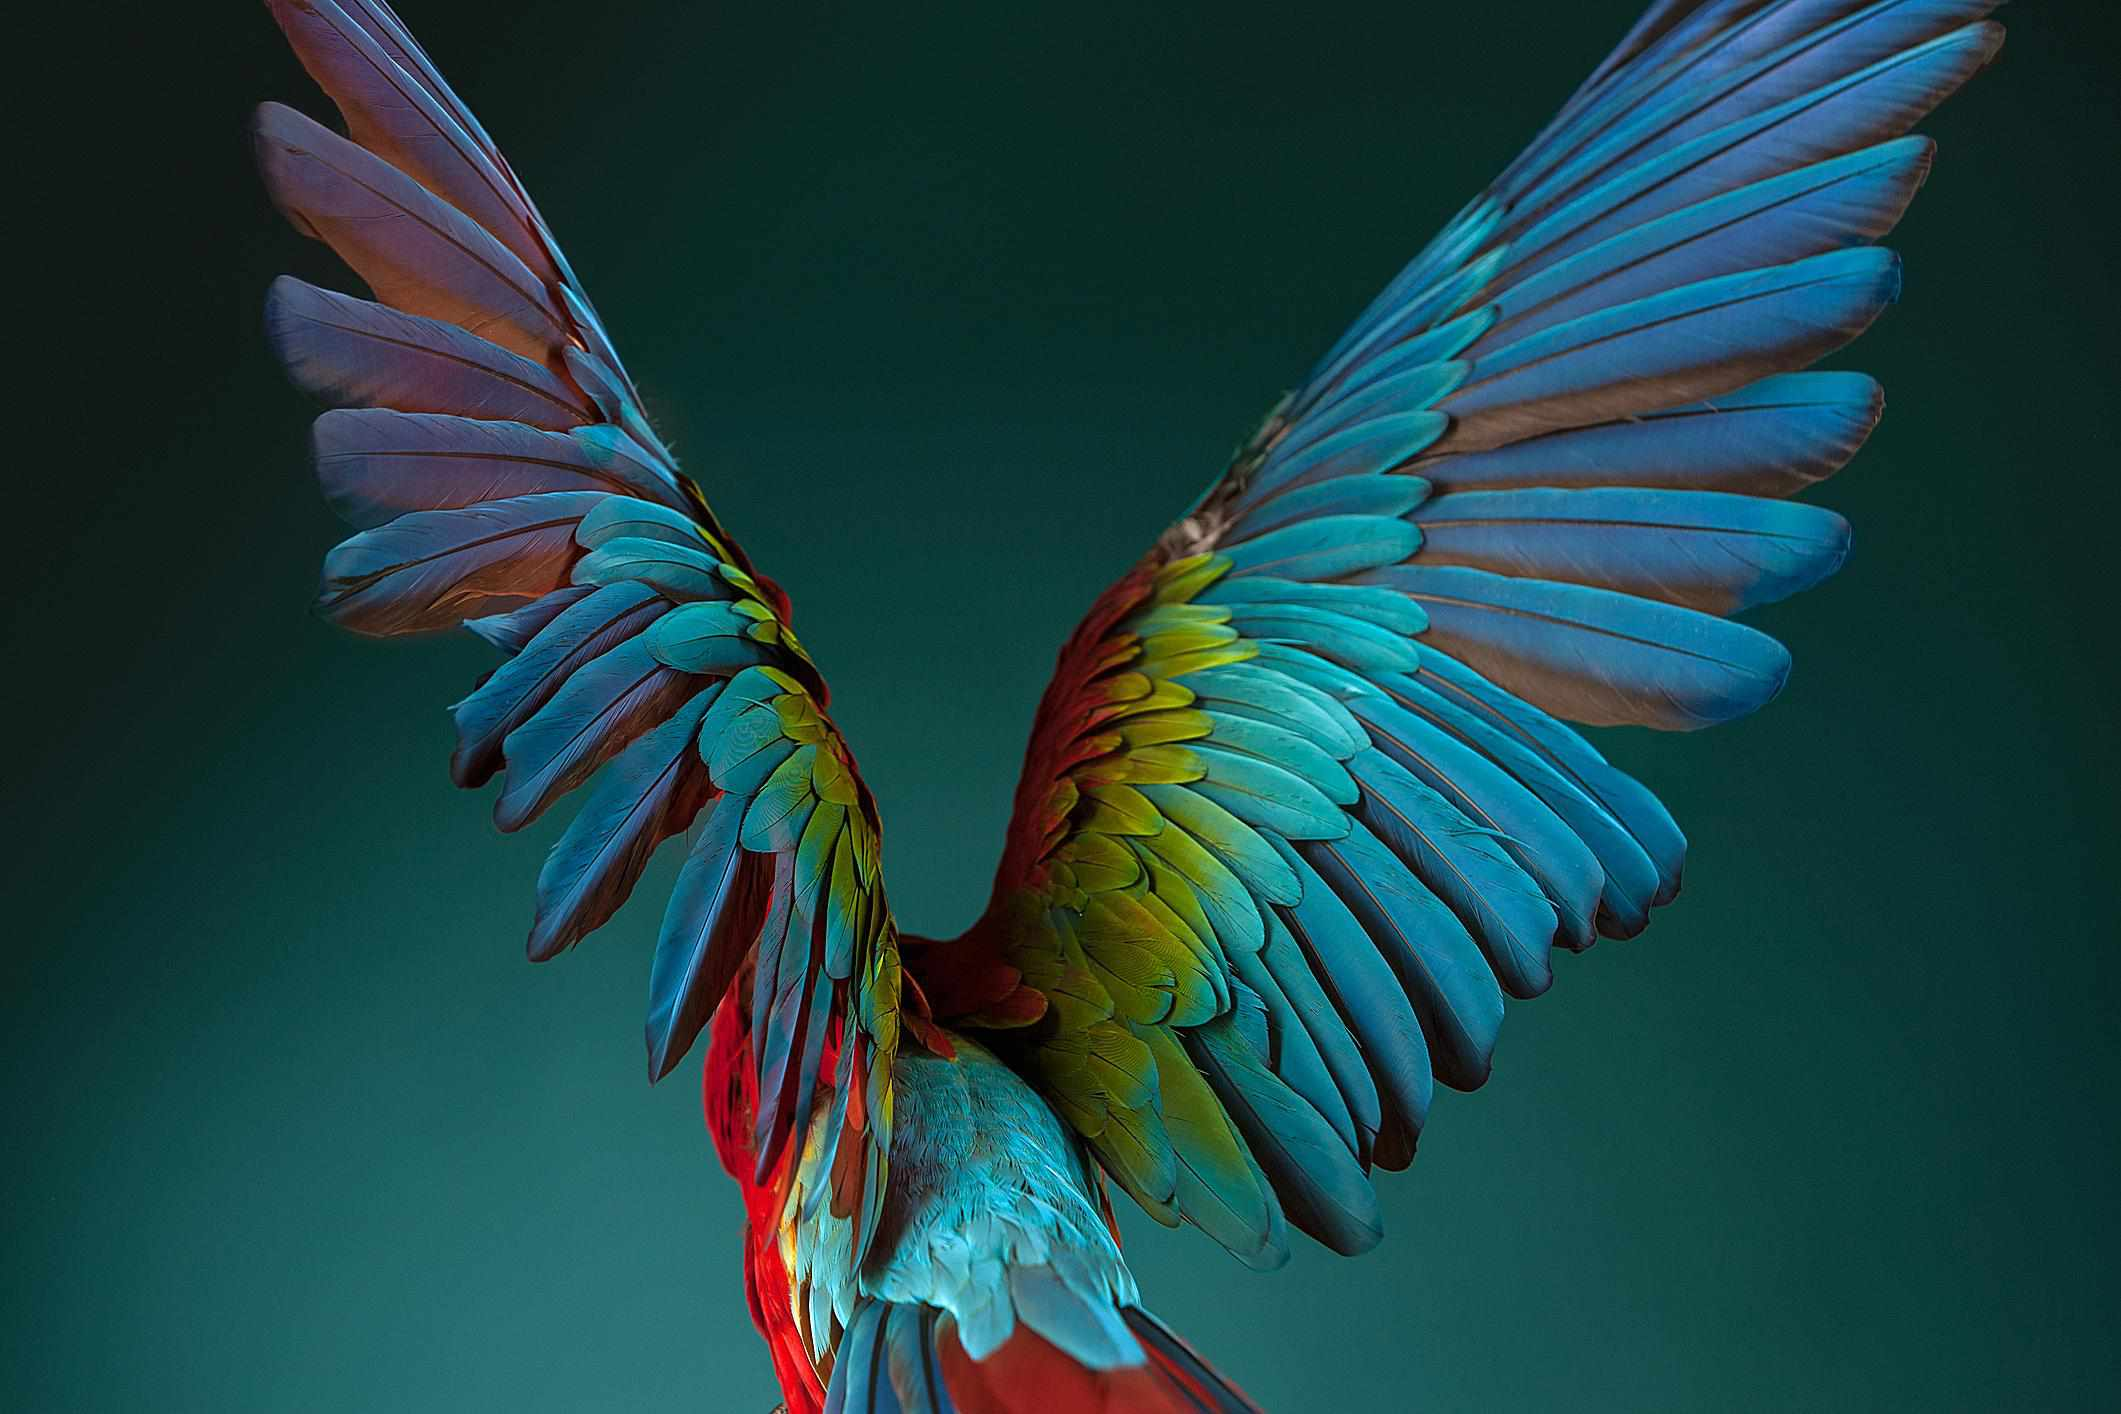 A scarlet Macaw spreads its wings.